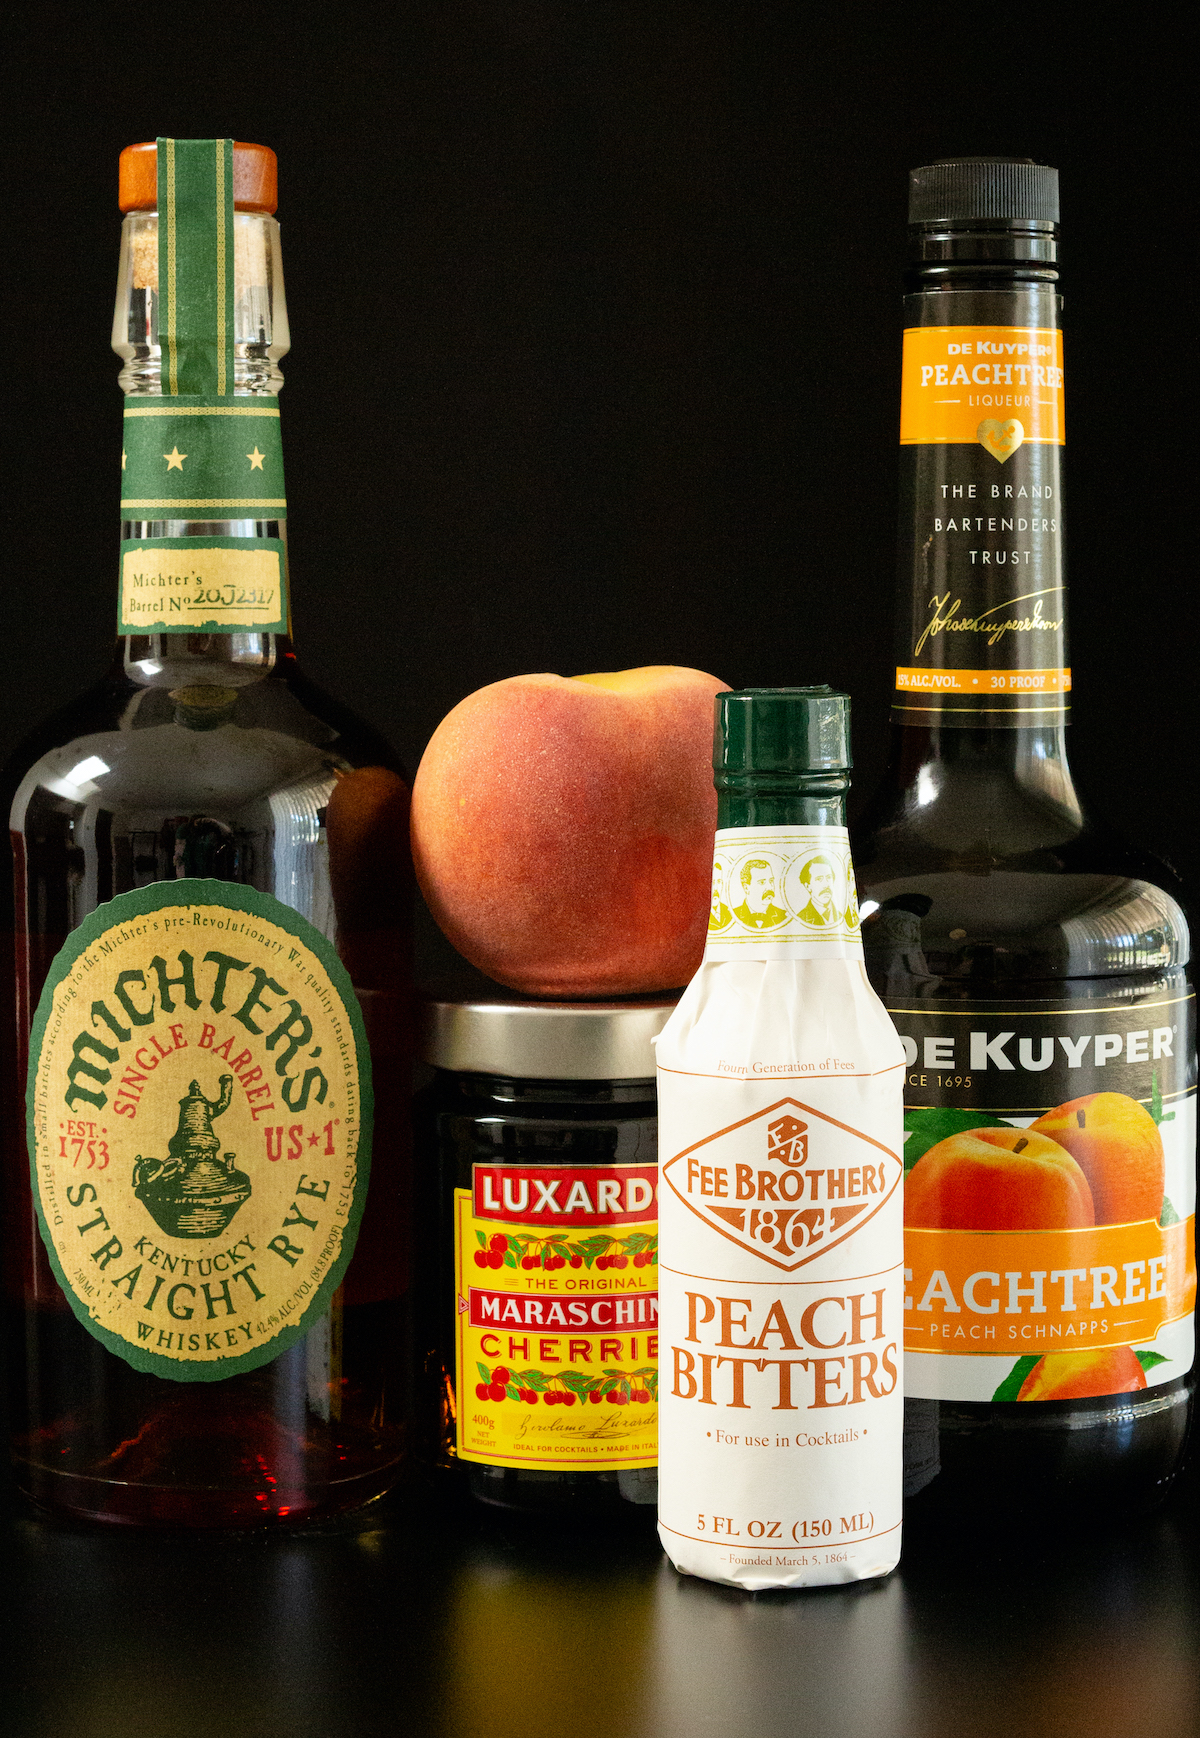 All the ingredients for peach old fashioned sit on a black background. A bottle of Michter's Rye Whiskey, maraschino cherries, peach schnapps, peach bitters, and a fresh peach.